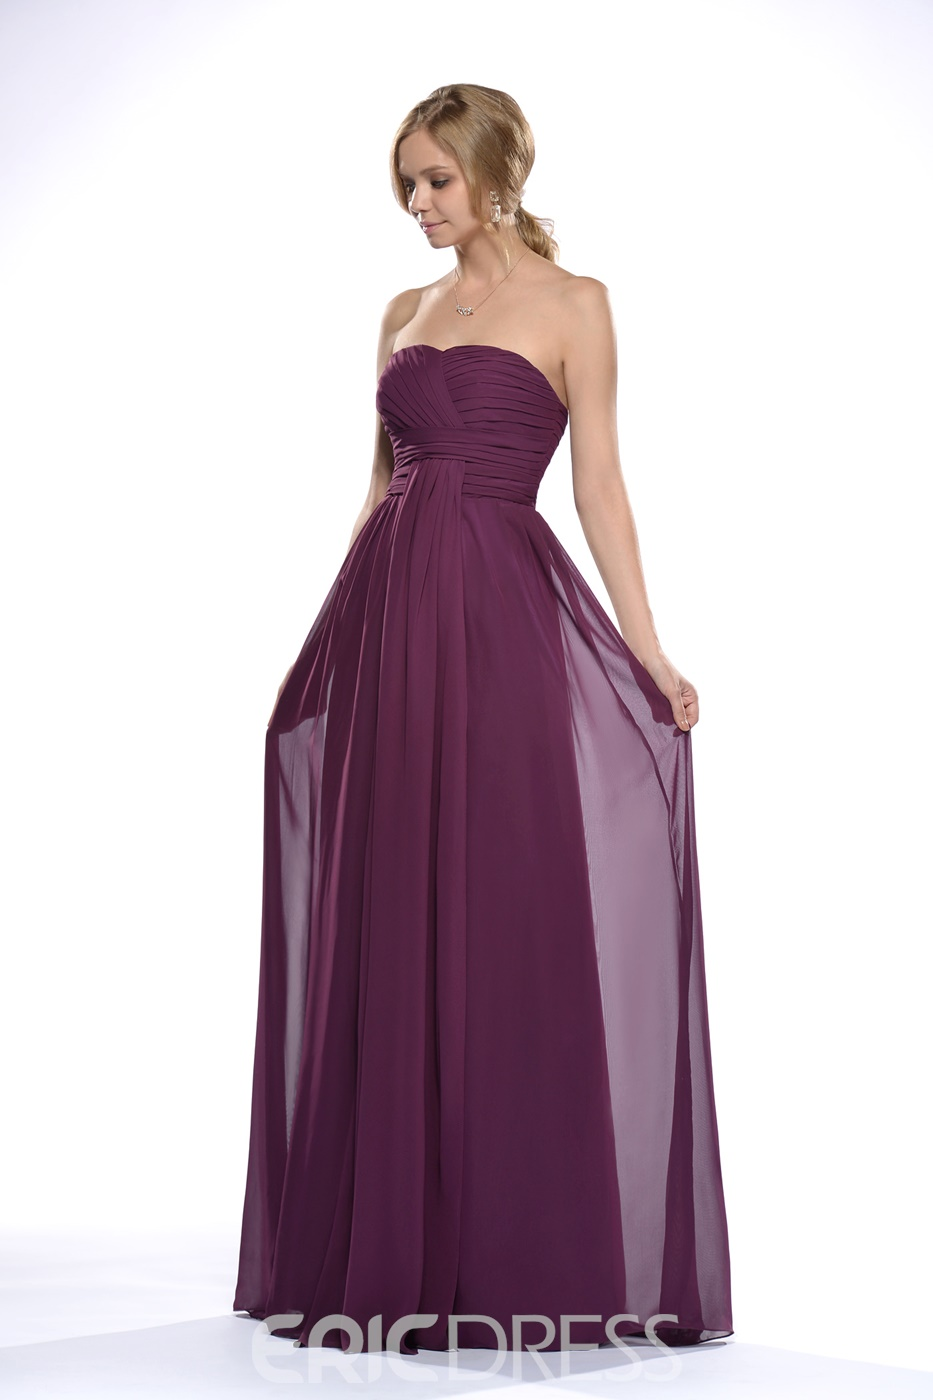 Marvelous Ruched Empire Waist Floor-Length Bridesmaid Dress